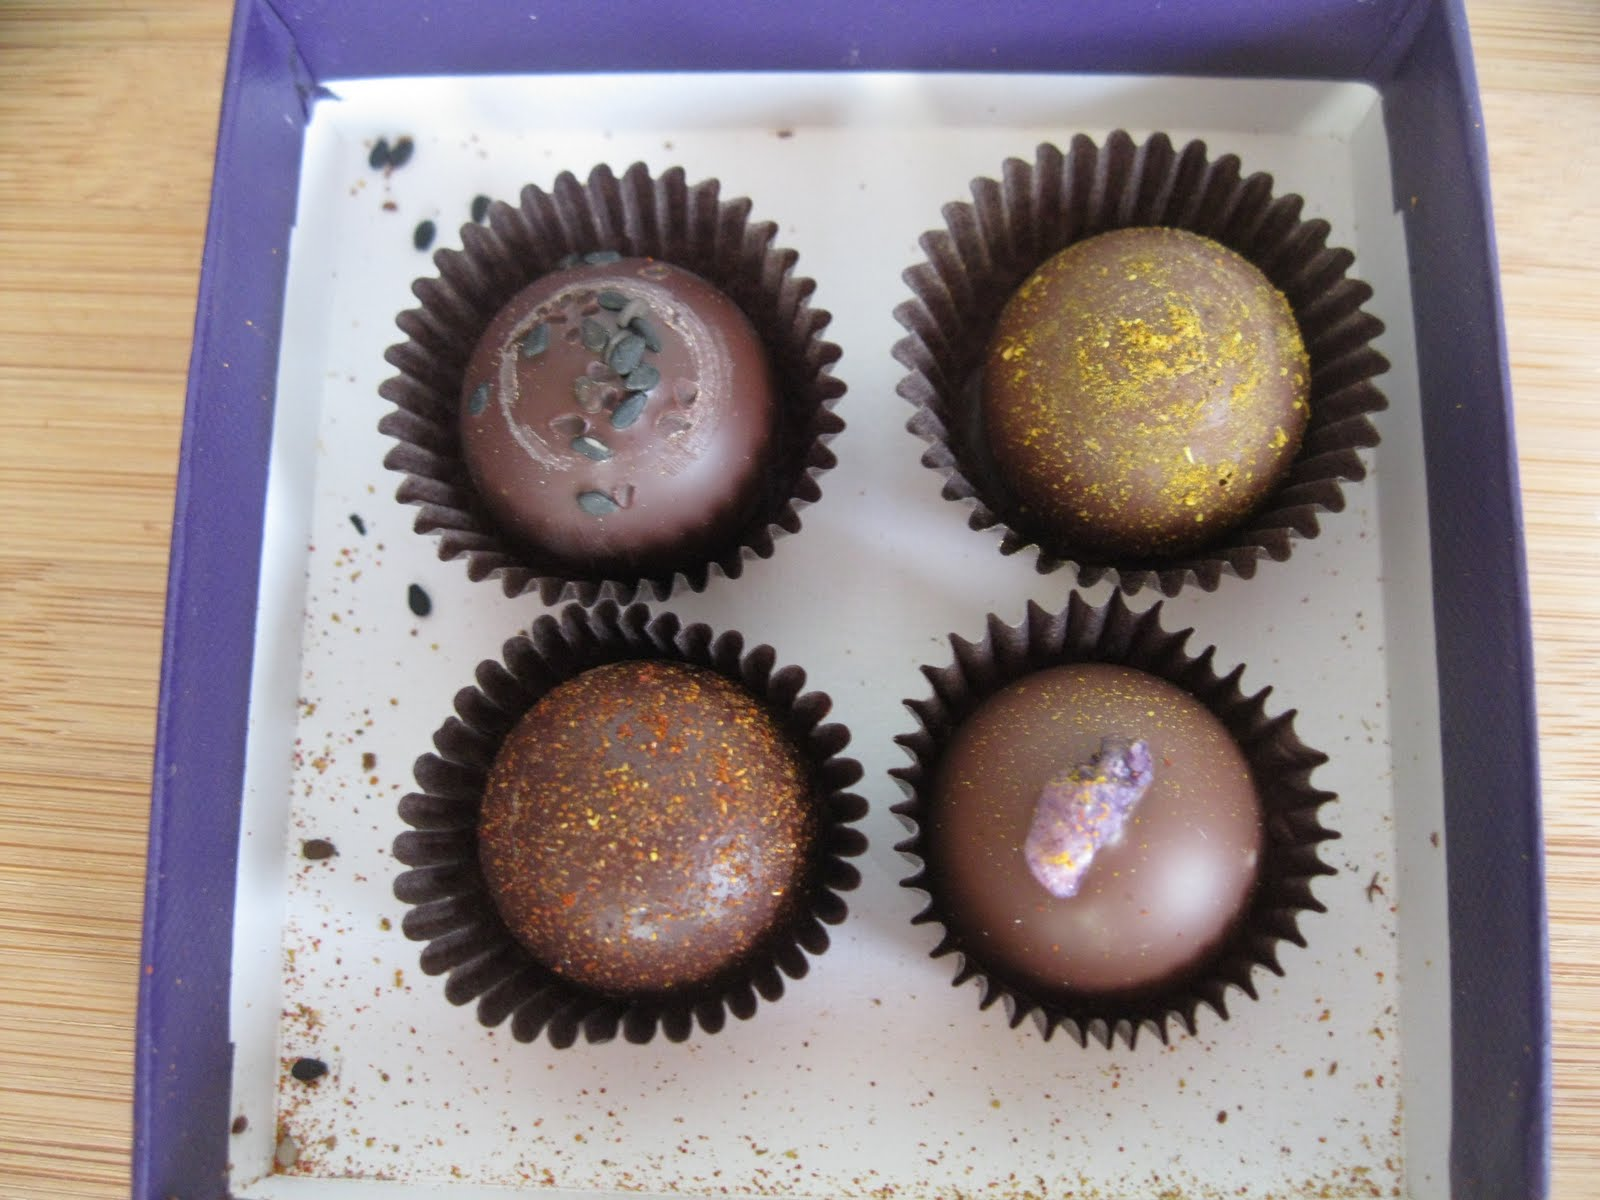 The District Chocoholic: Vosges Truffles: Naga